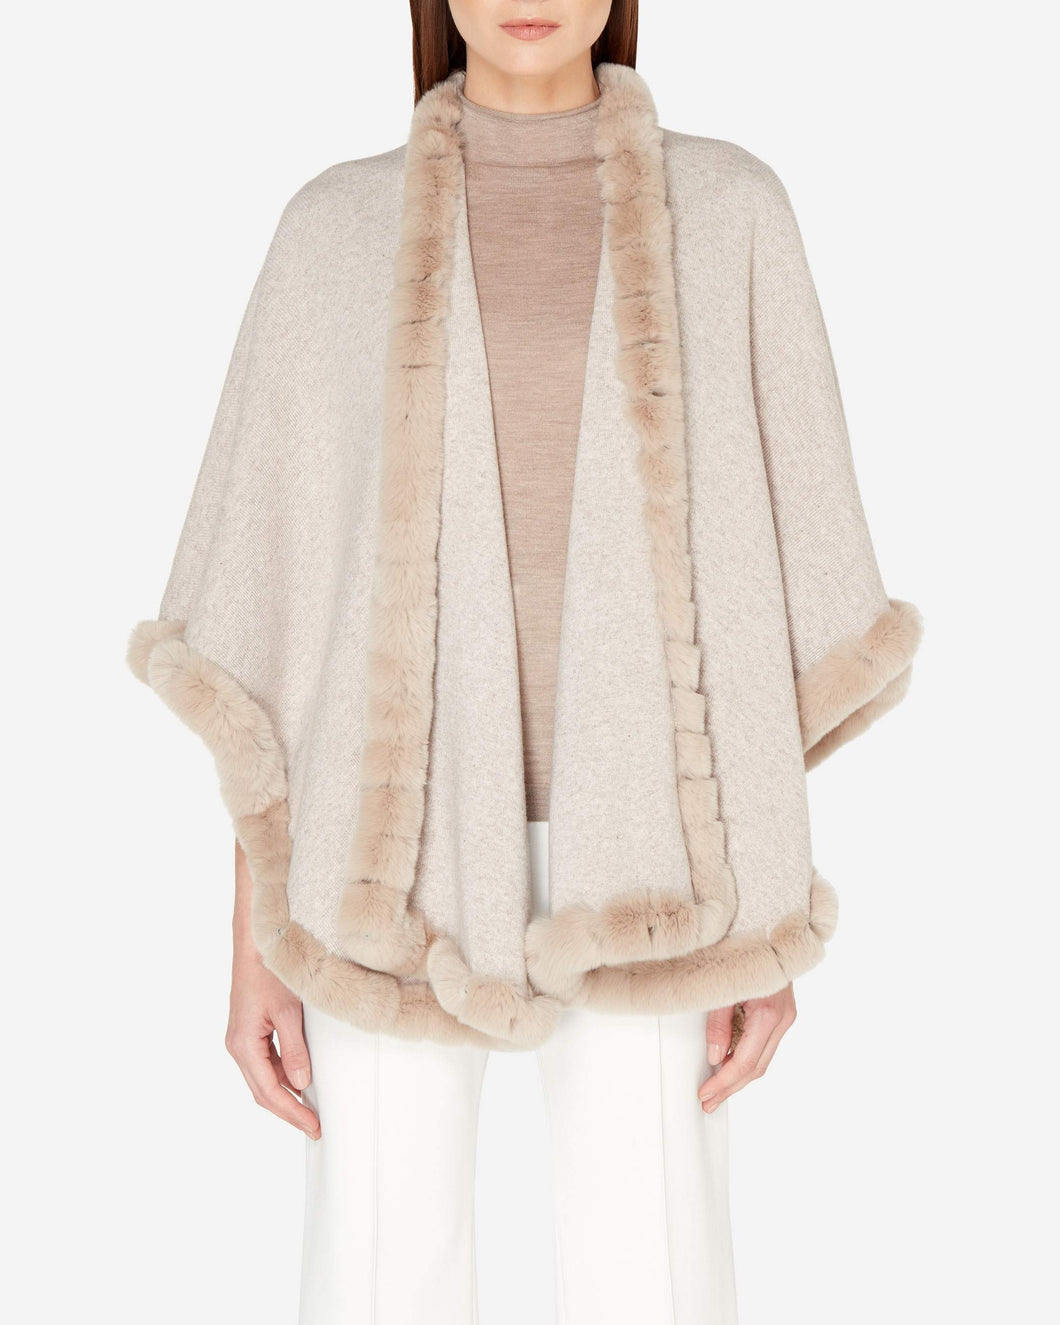 Cashmere Cape with Fur Trim Edge Sand Brown + Sand Brown Fur